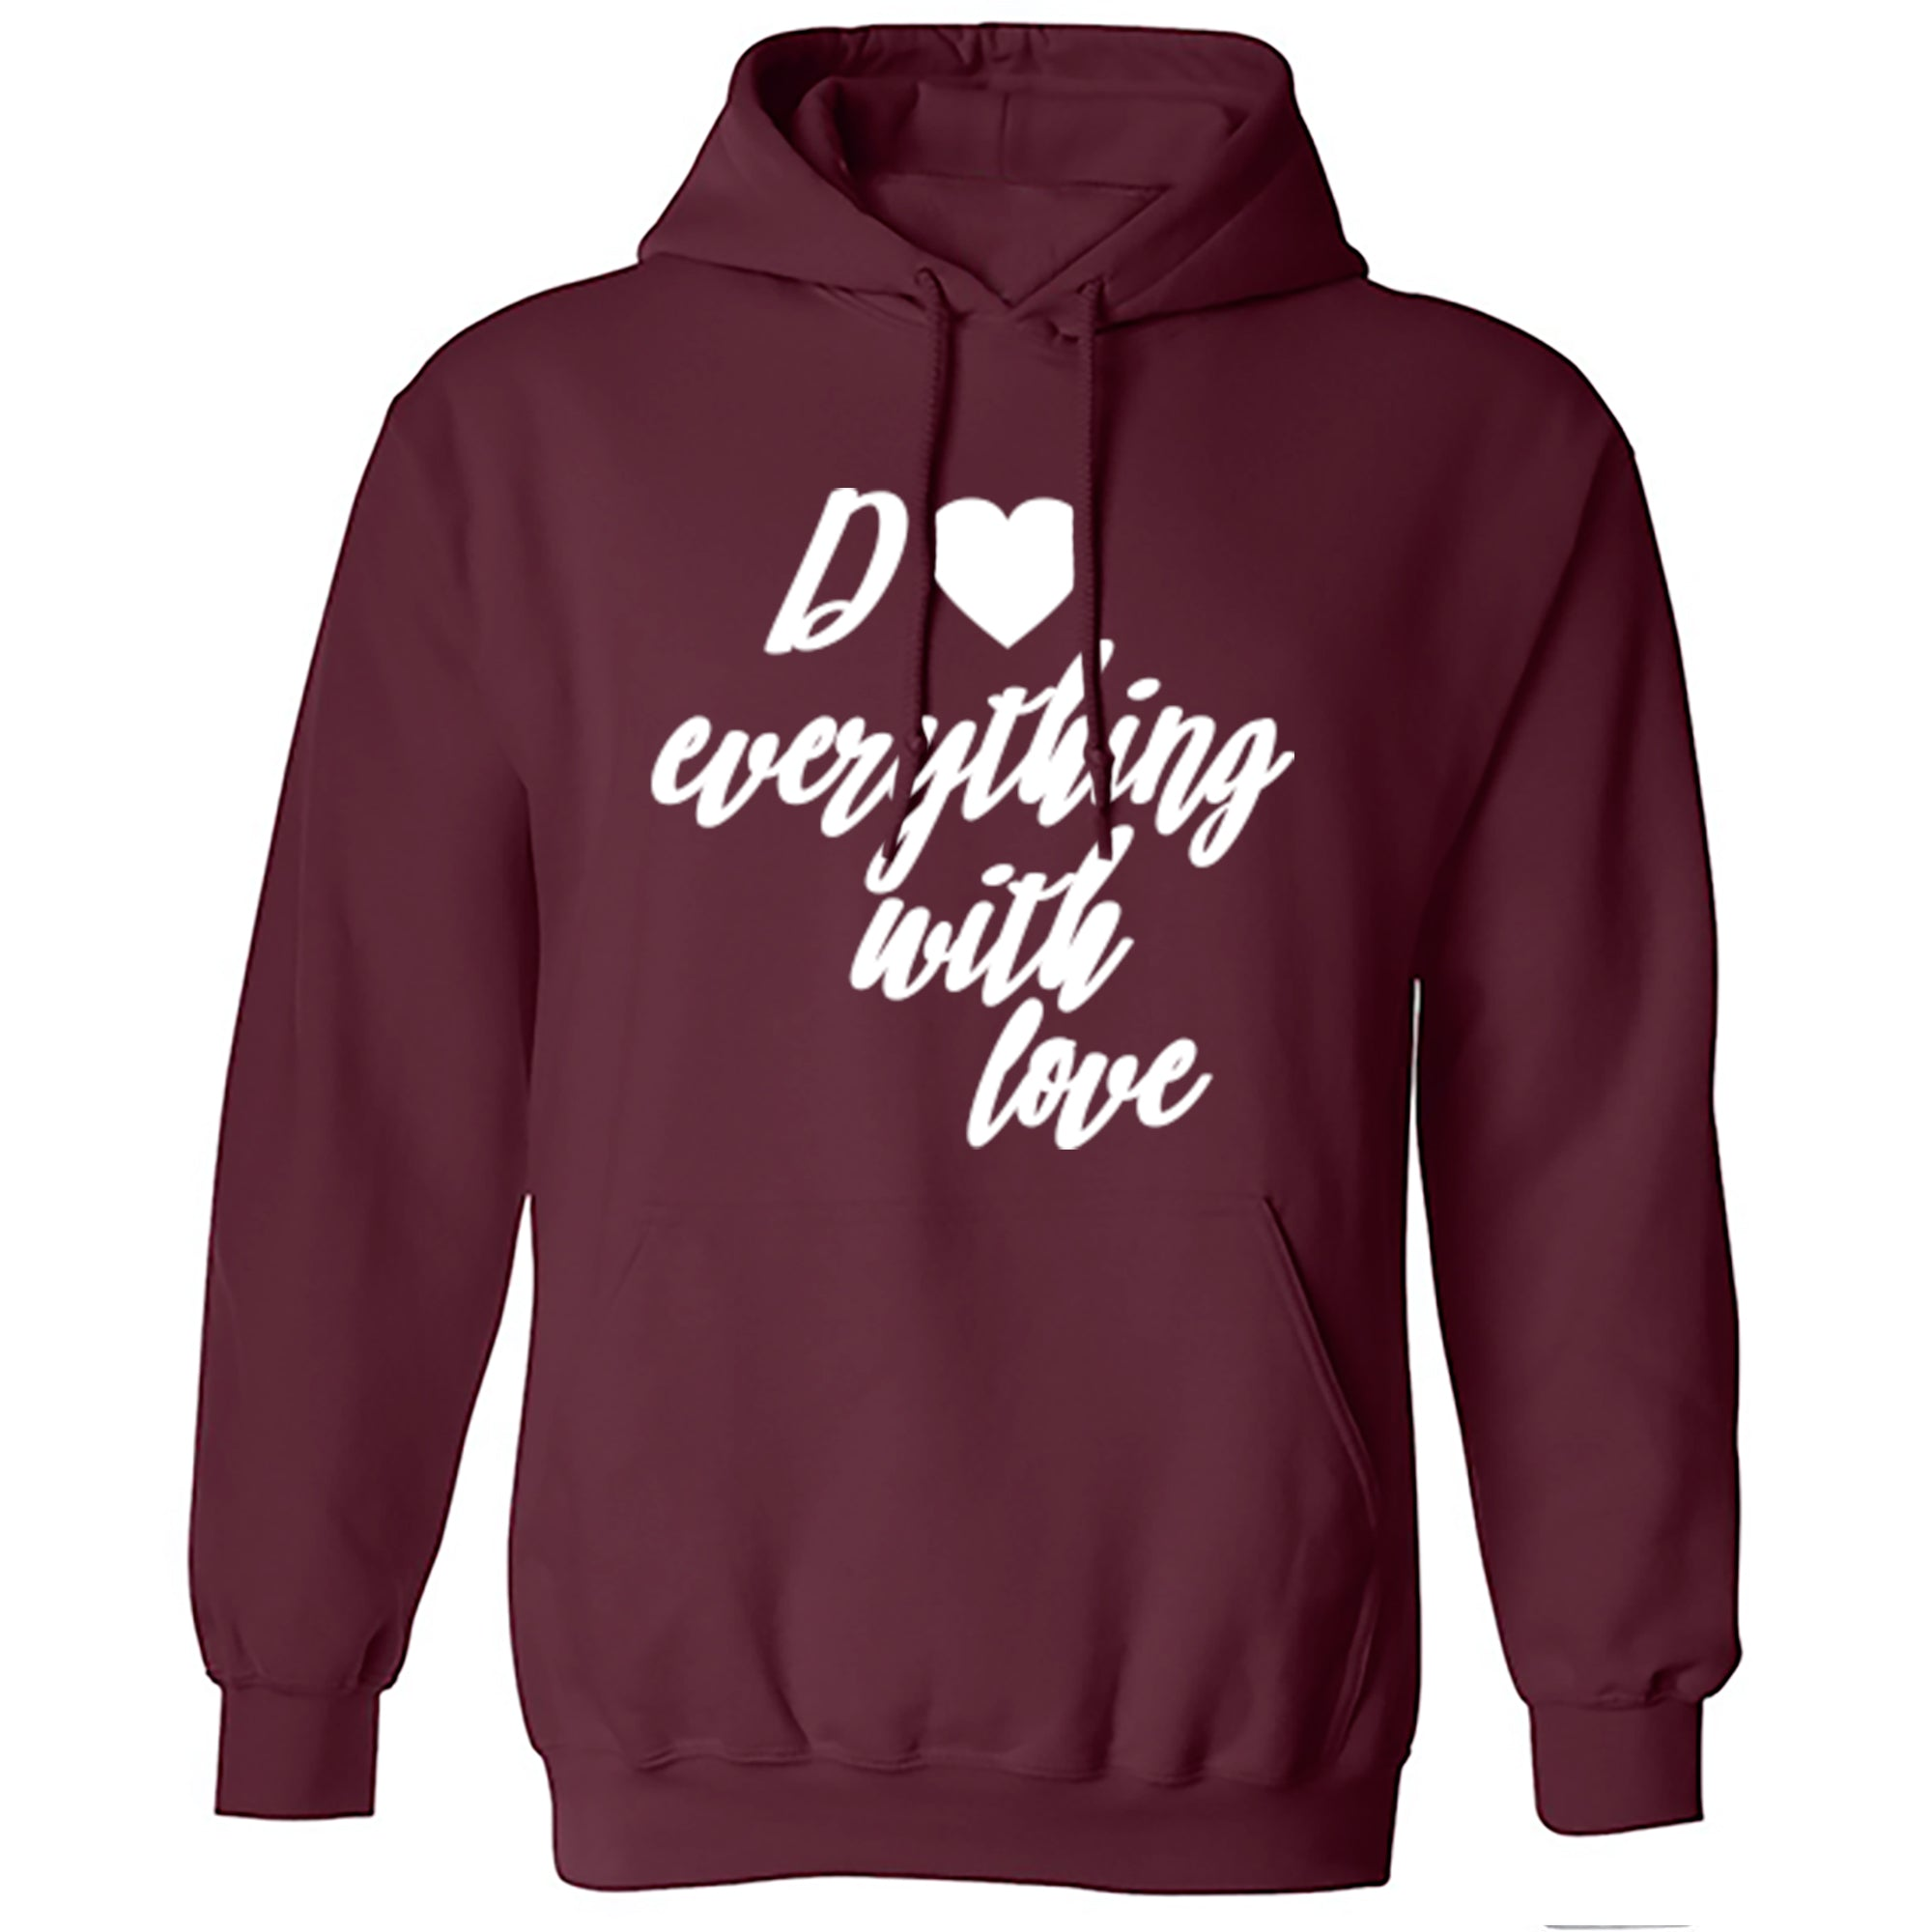 Do Everything With Love Unisex Hoodie S0324 - Illustrated Identity Ltd.